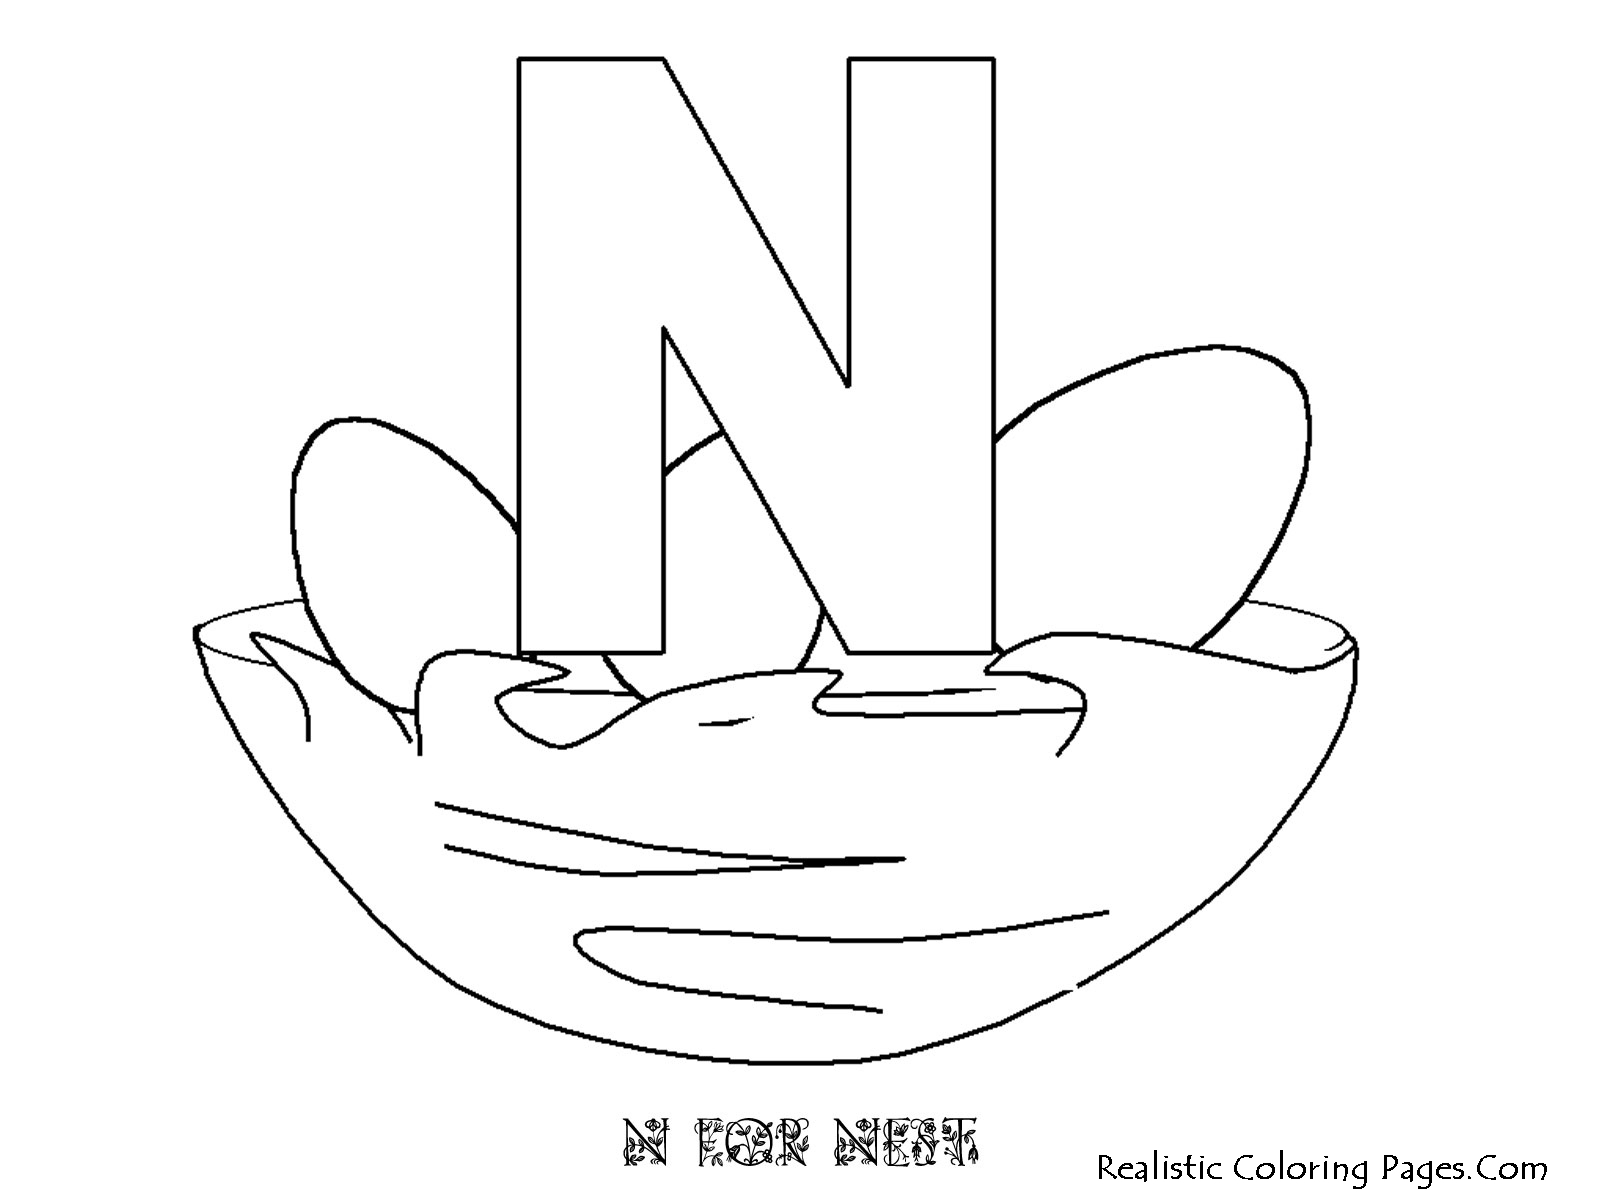 n coloring pages - photo #24